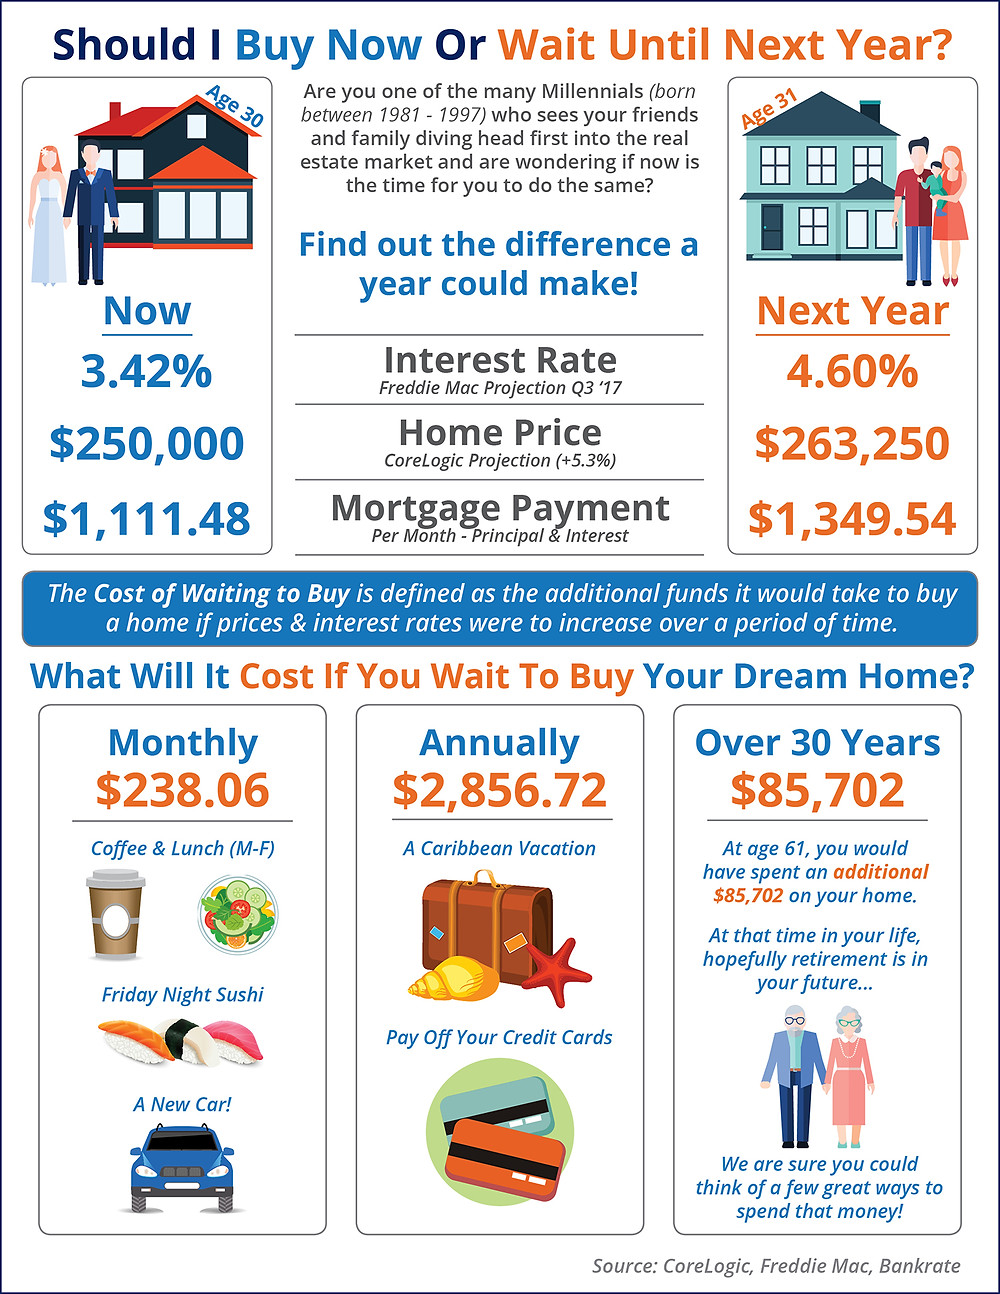 Should I Wait Until Next Year? Or Buy Now? [INFOGRAPHIC] | Simplifying The Market